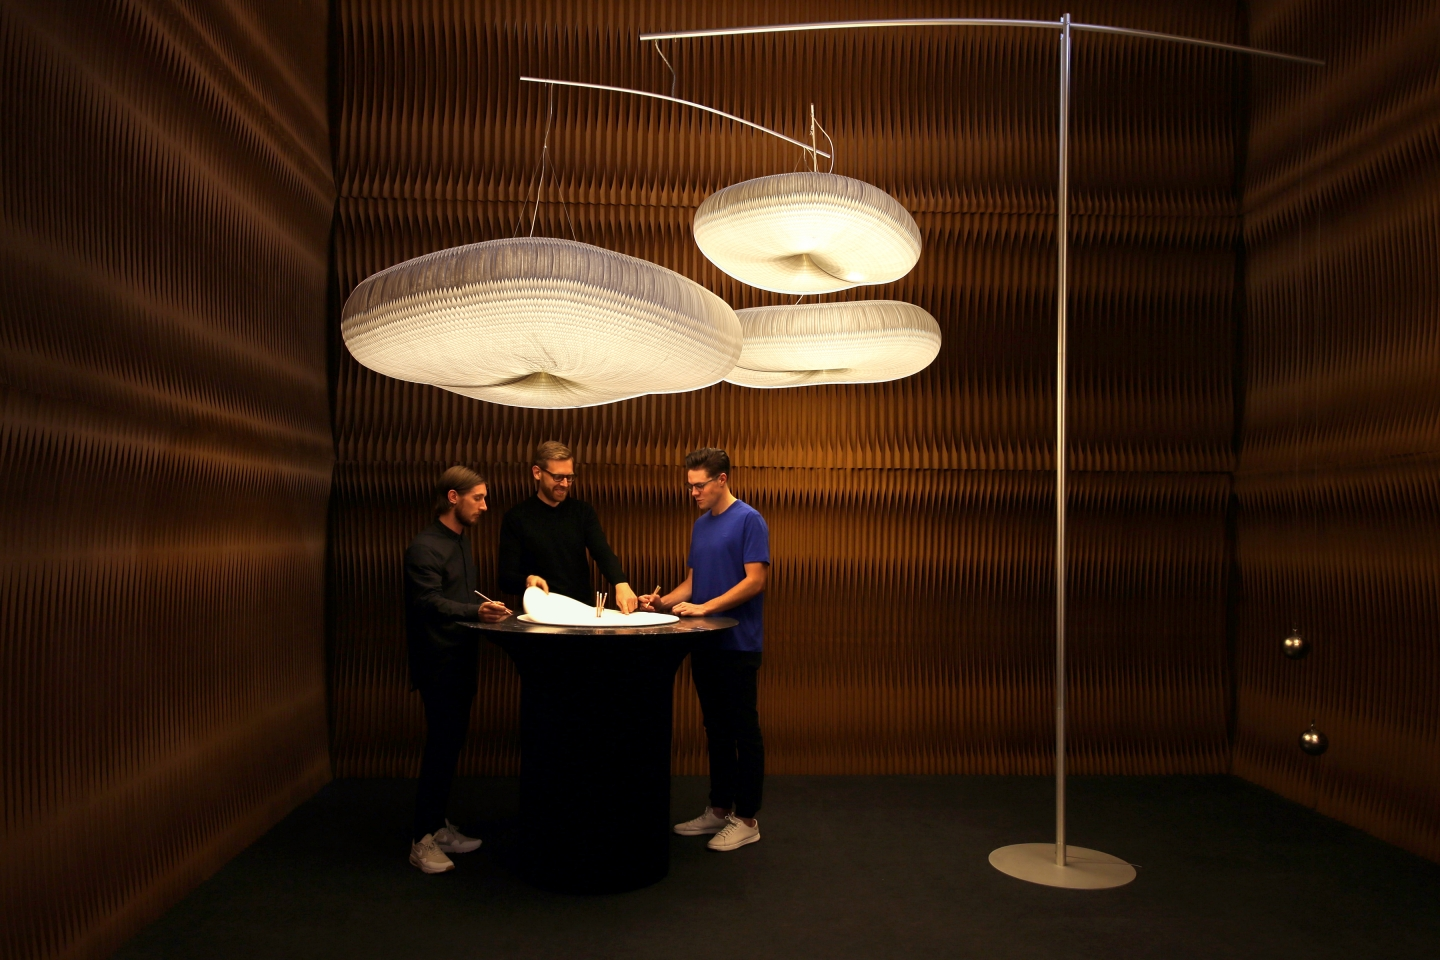 paper lighting and accordion paper furniture by molo - a group chats around a cantilever table with a black marble top, beneath a canopy of clouds